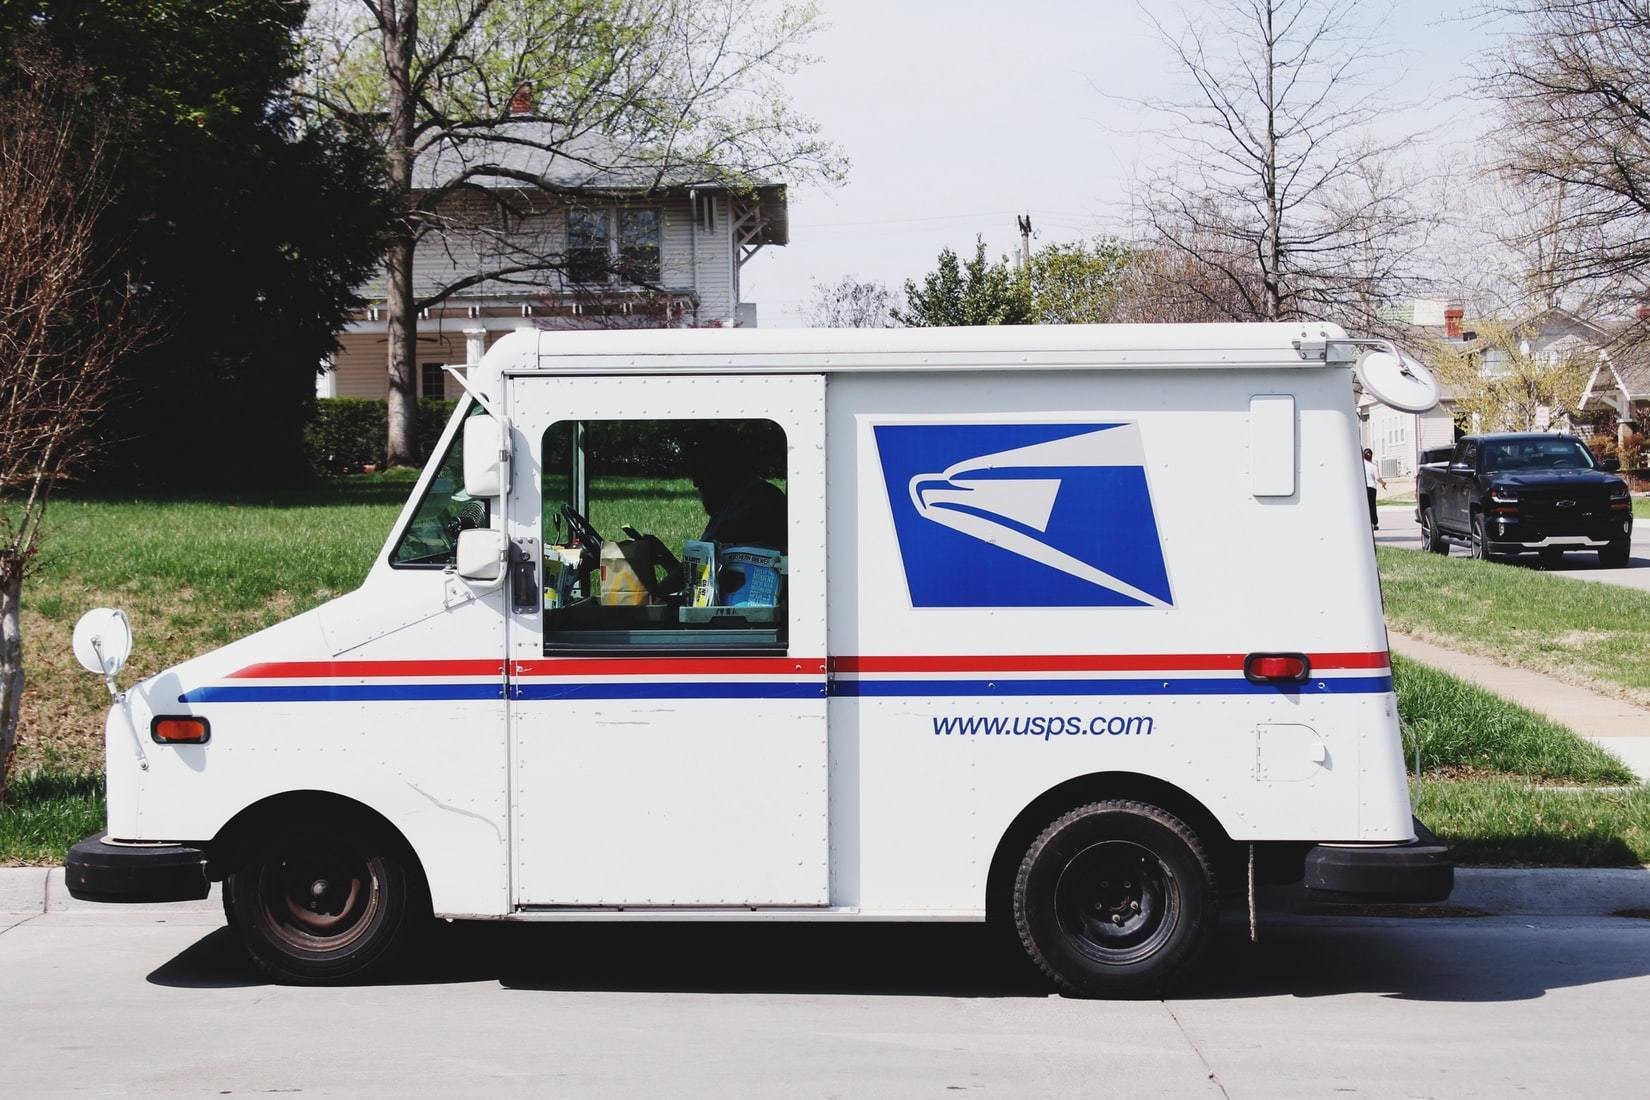 Evangelical Christian sues US Postal Service over mandatory work on Sundays